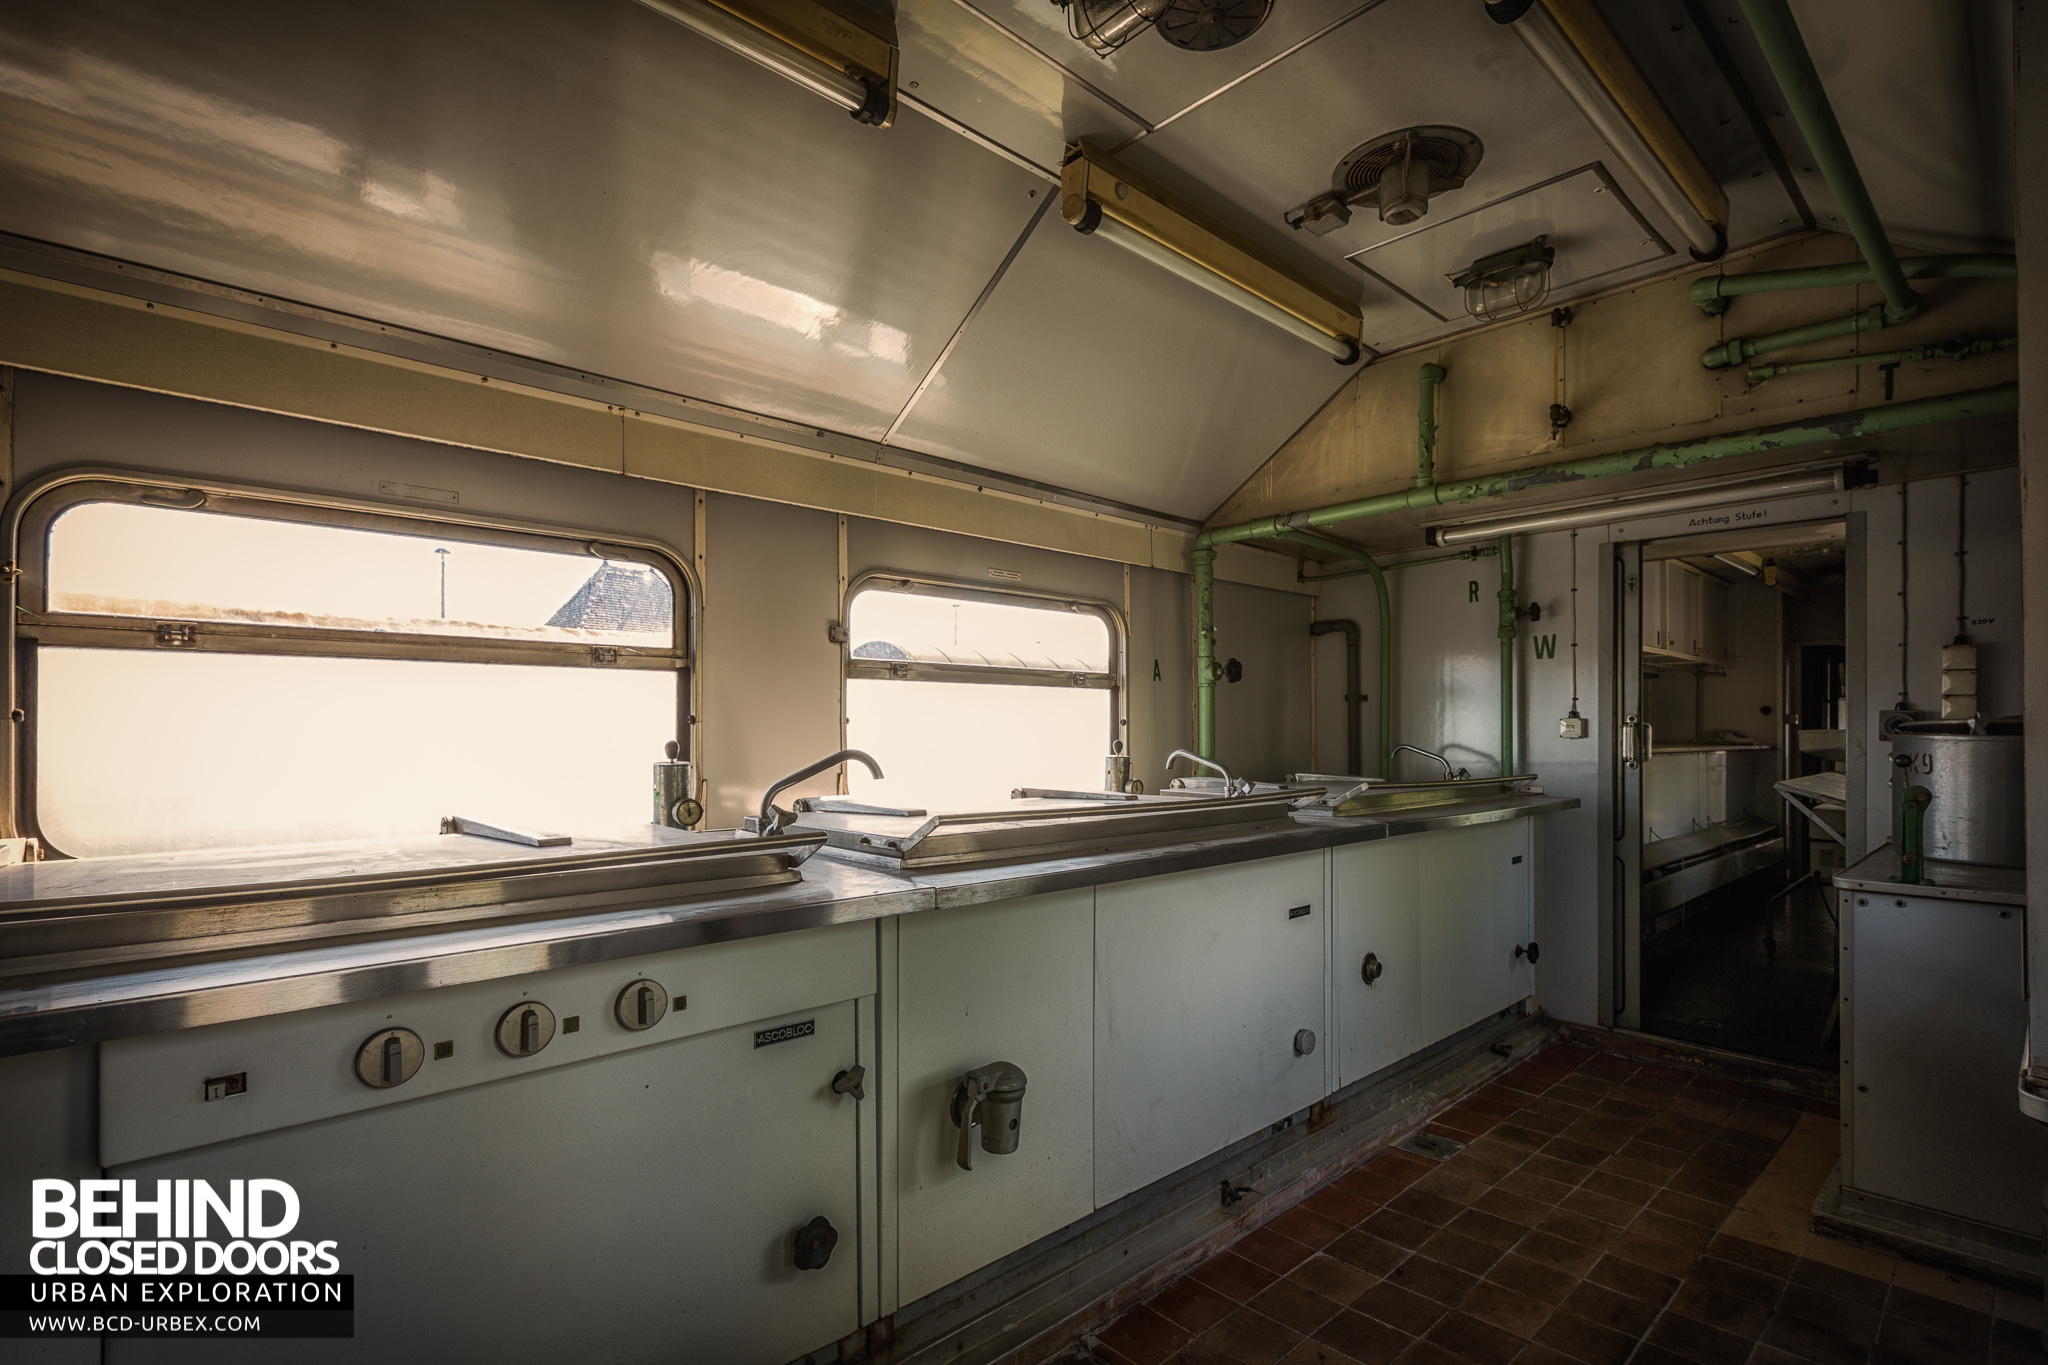 Medical Train Germany 187 Urbex Behind Closed Doors Urban